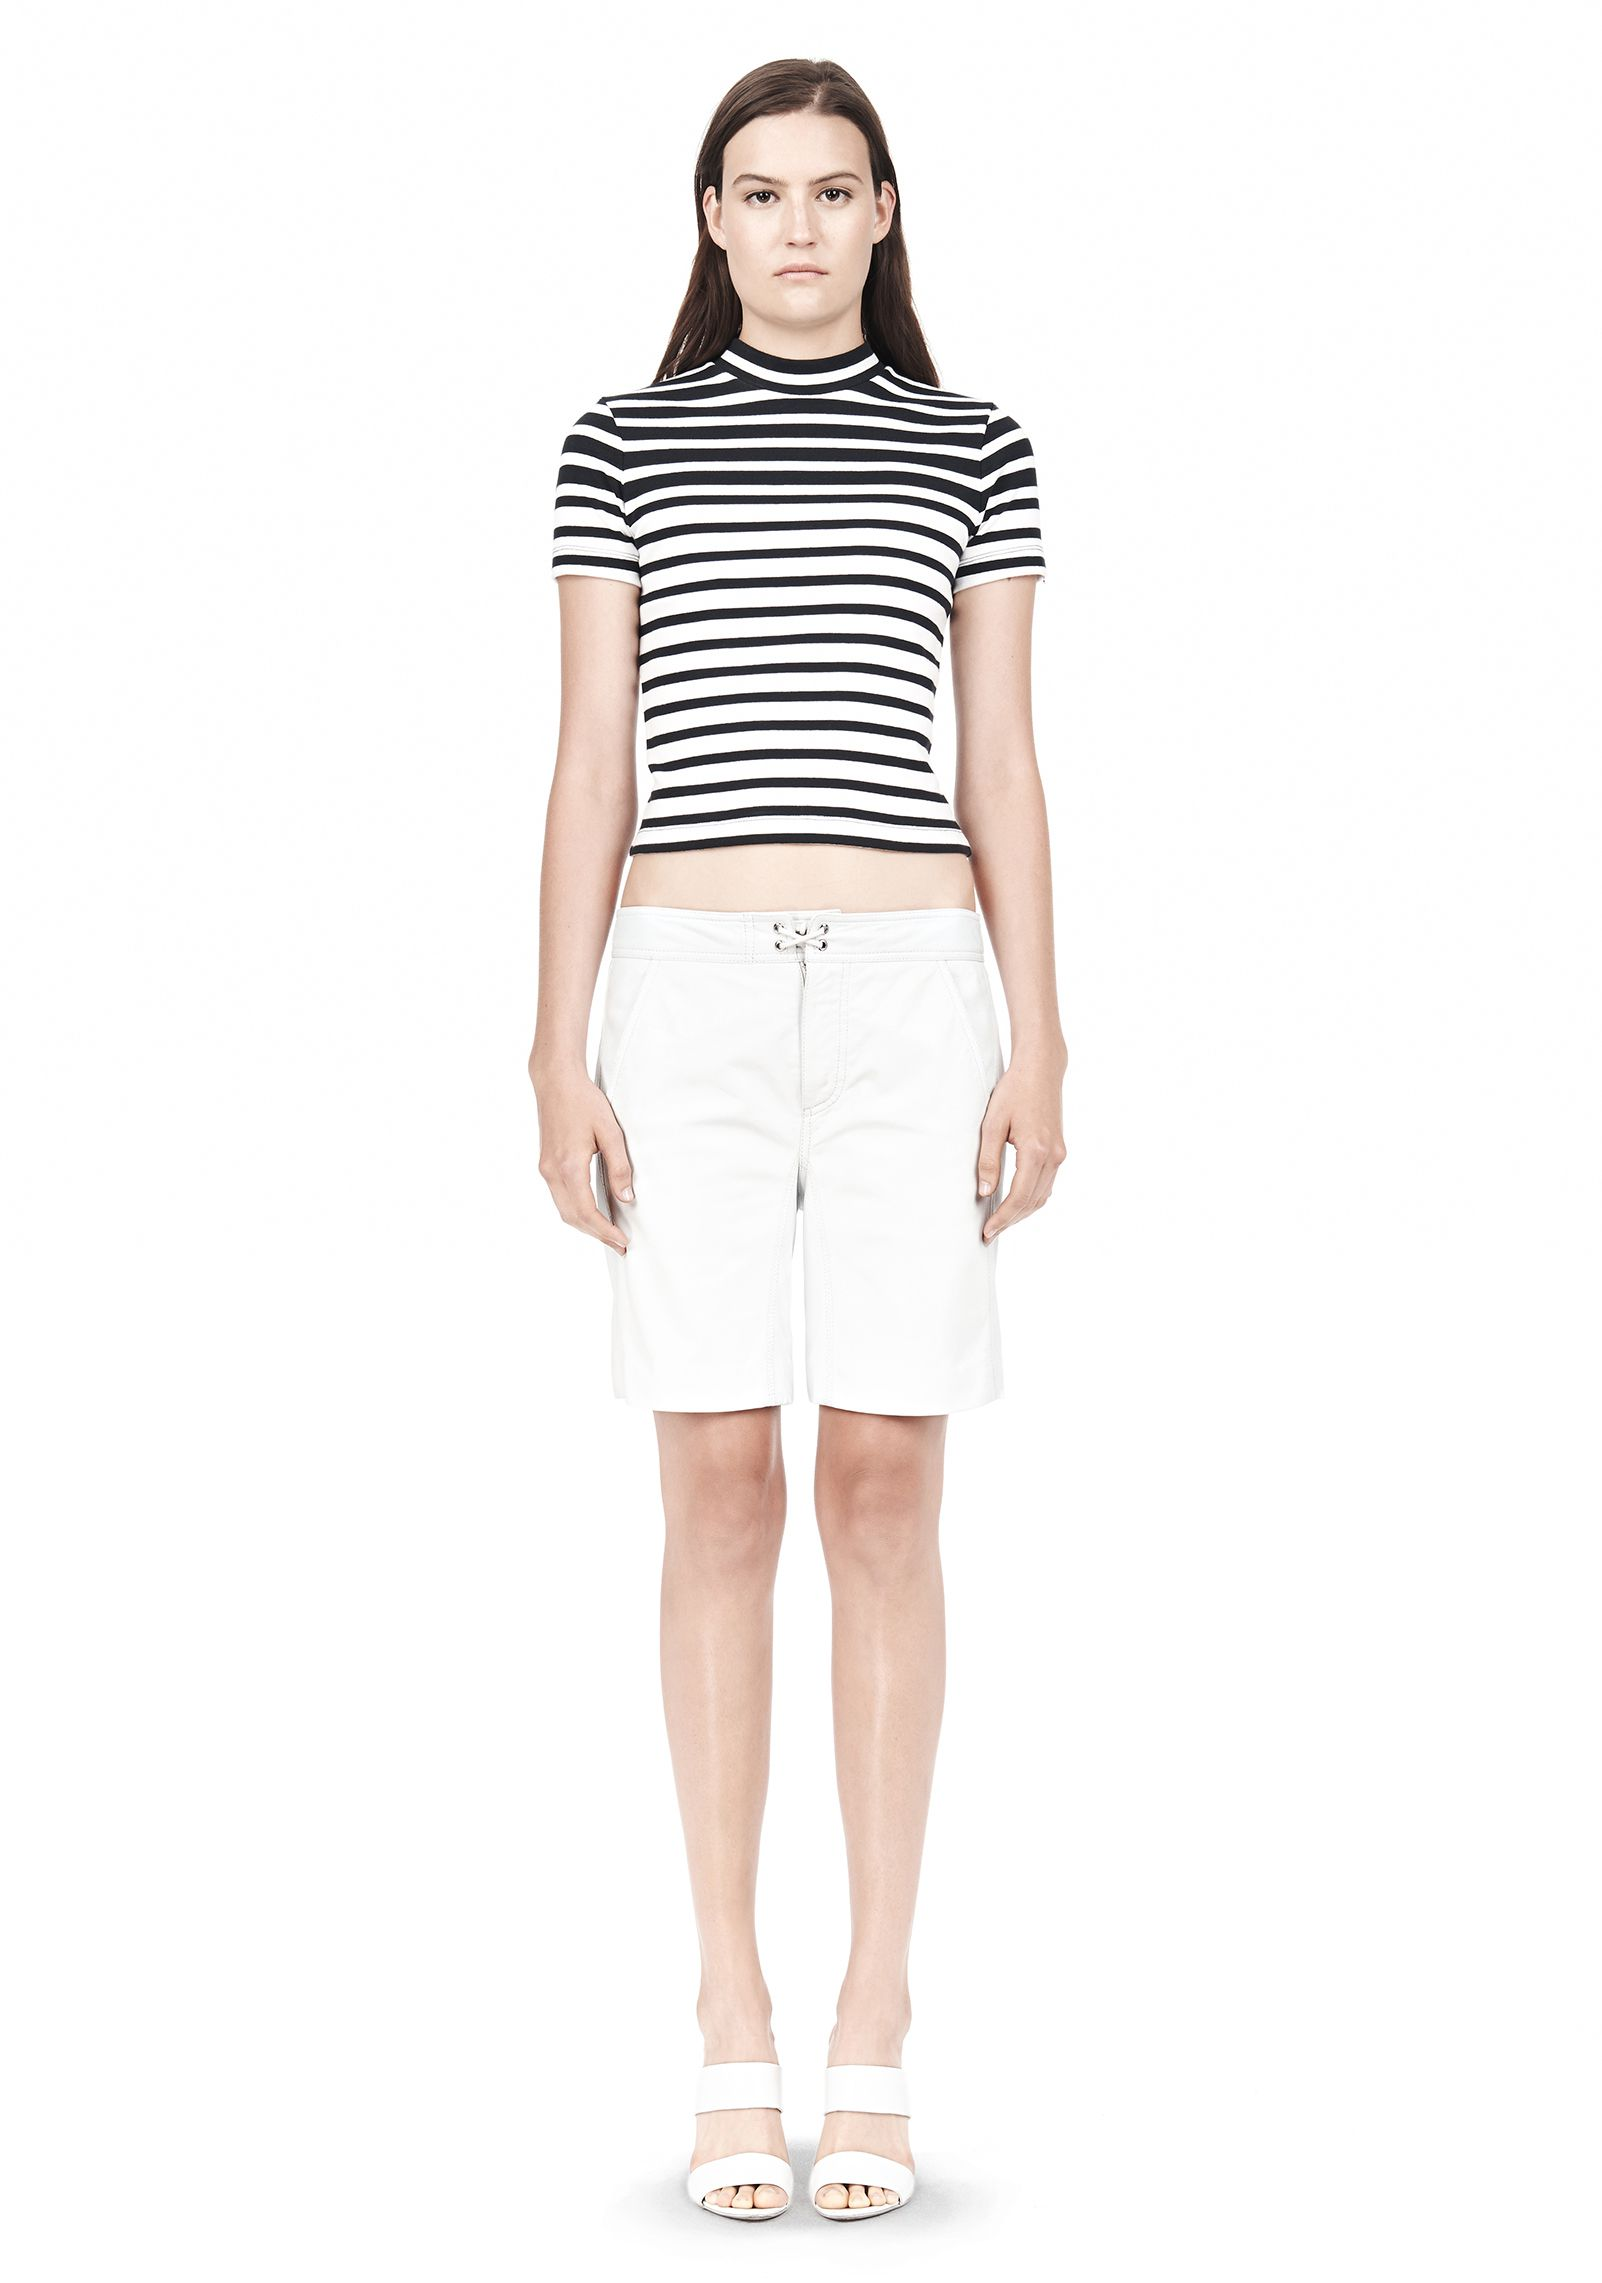 COMPACT COTTON ENGINEERED RIB CROPPED TEE - Crewneck Sweaters Women - Alexander Wang Online Store